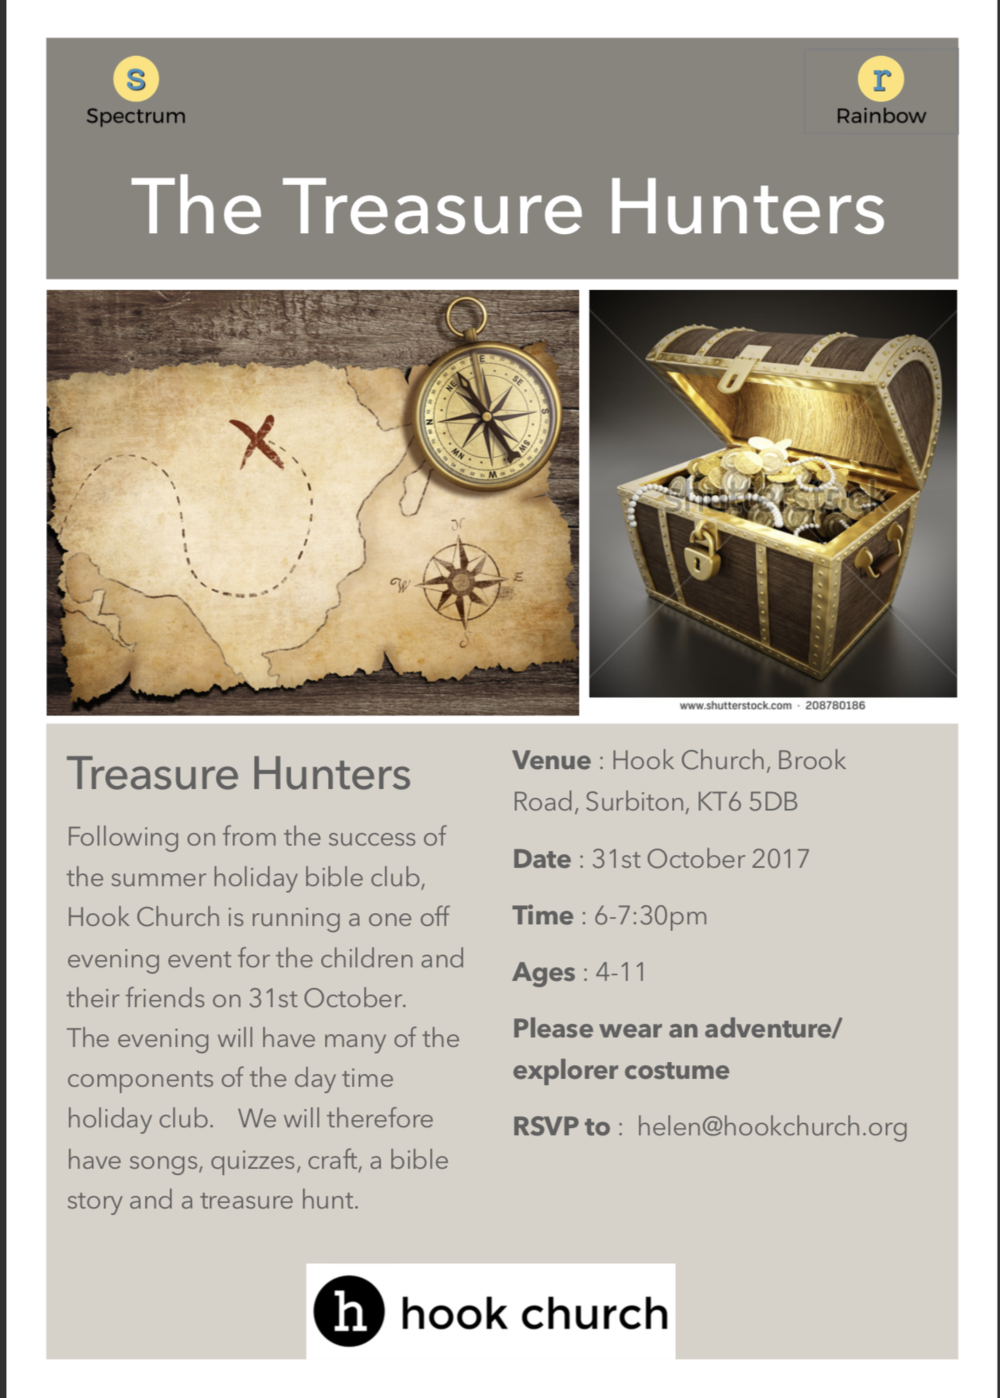 treasure hunters jpeg.png